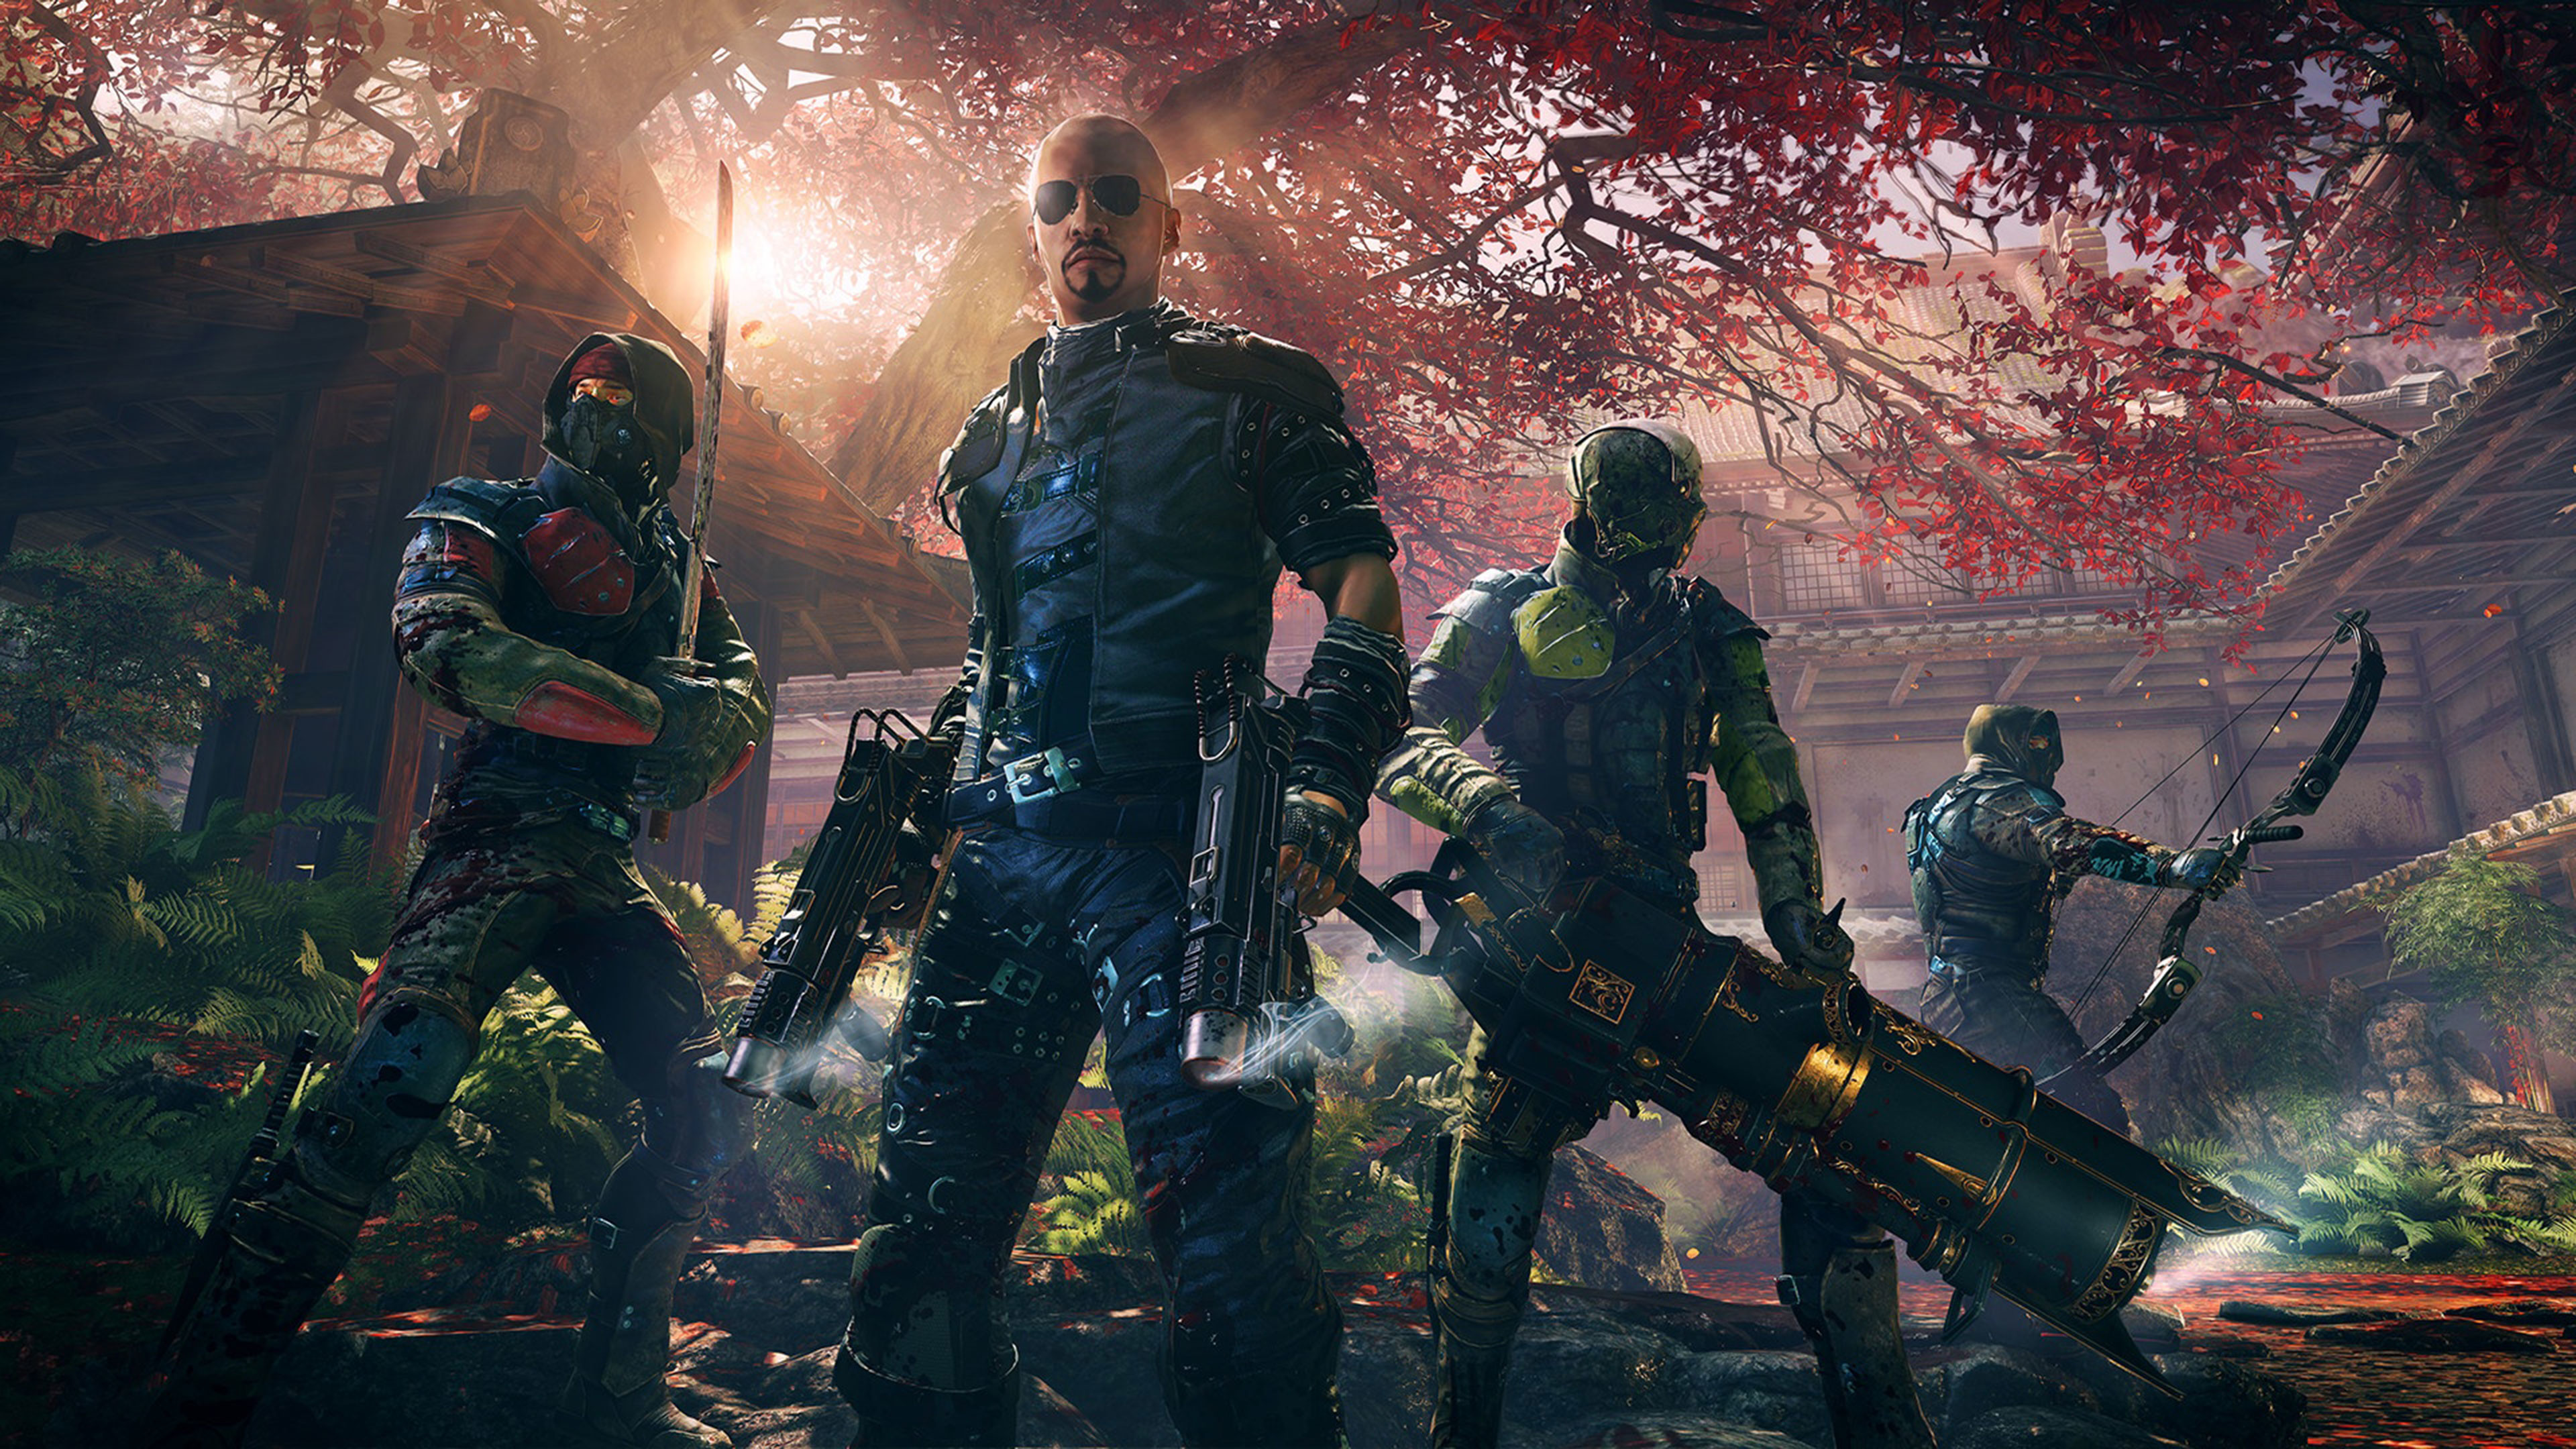 Res: 3840x2160, Shadow Warrior 2 4K Wallpaper ...